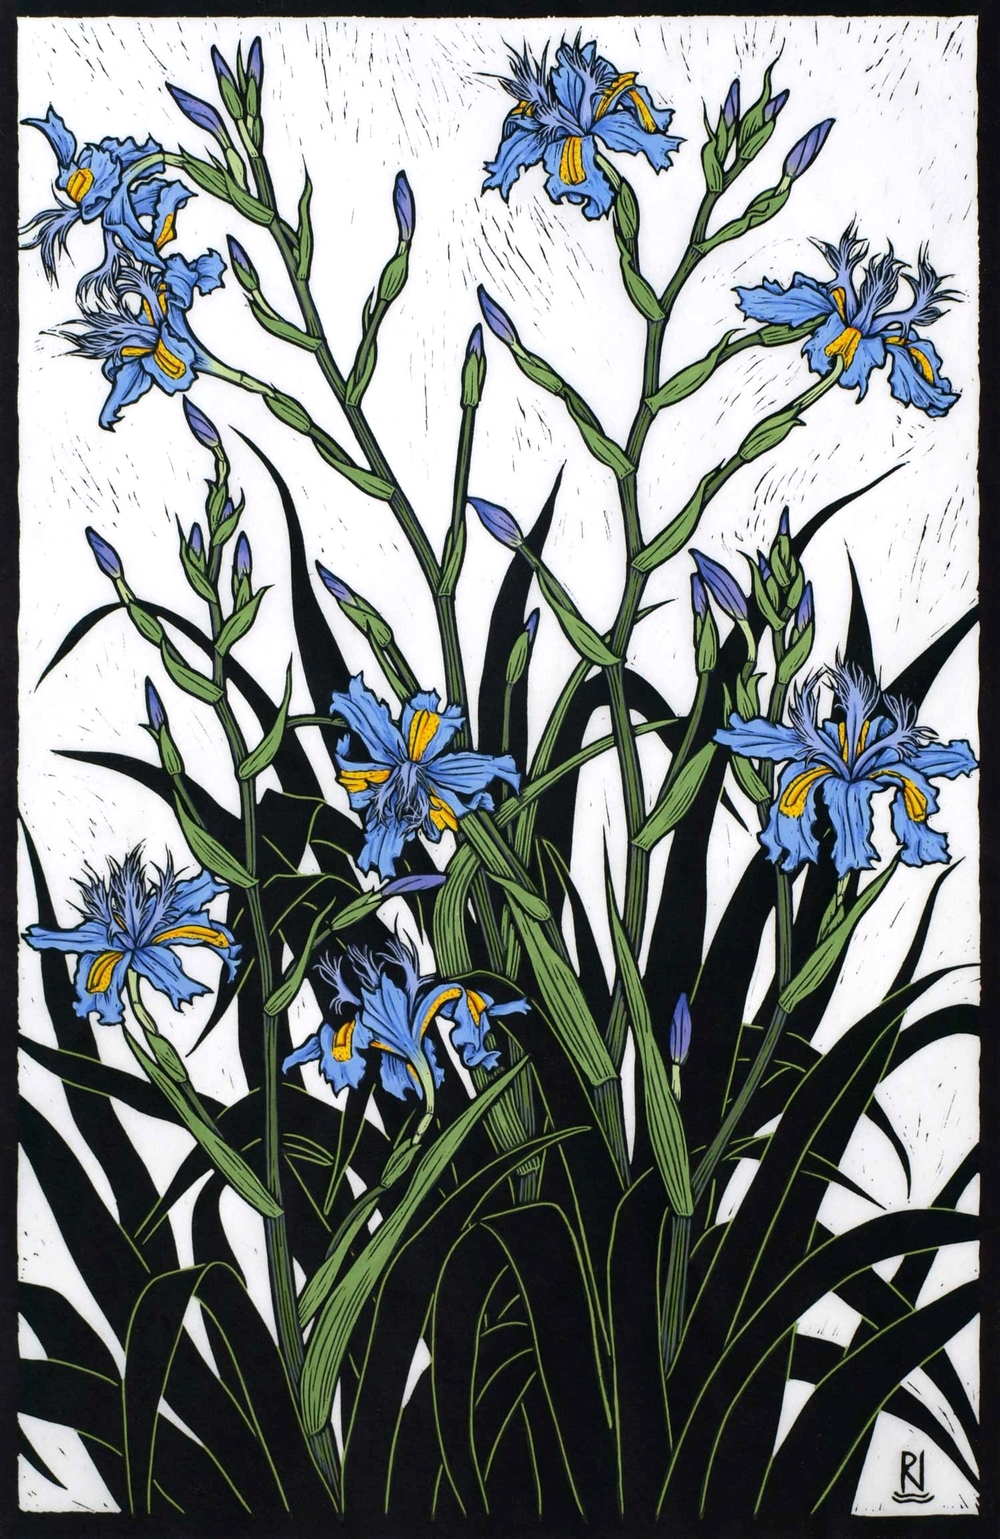 RUNNING IRIS  61 X 39 CM    EDITION OF 50  HAND COLOURED LINOCUT ON HANDMADE JAPANESE PAPER  $1,100